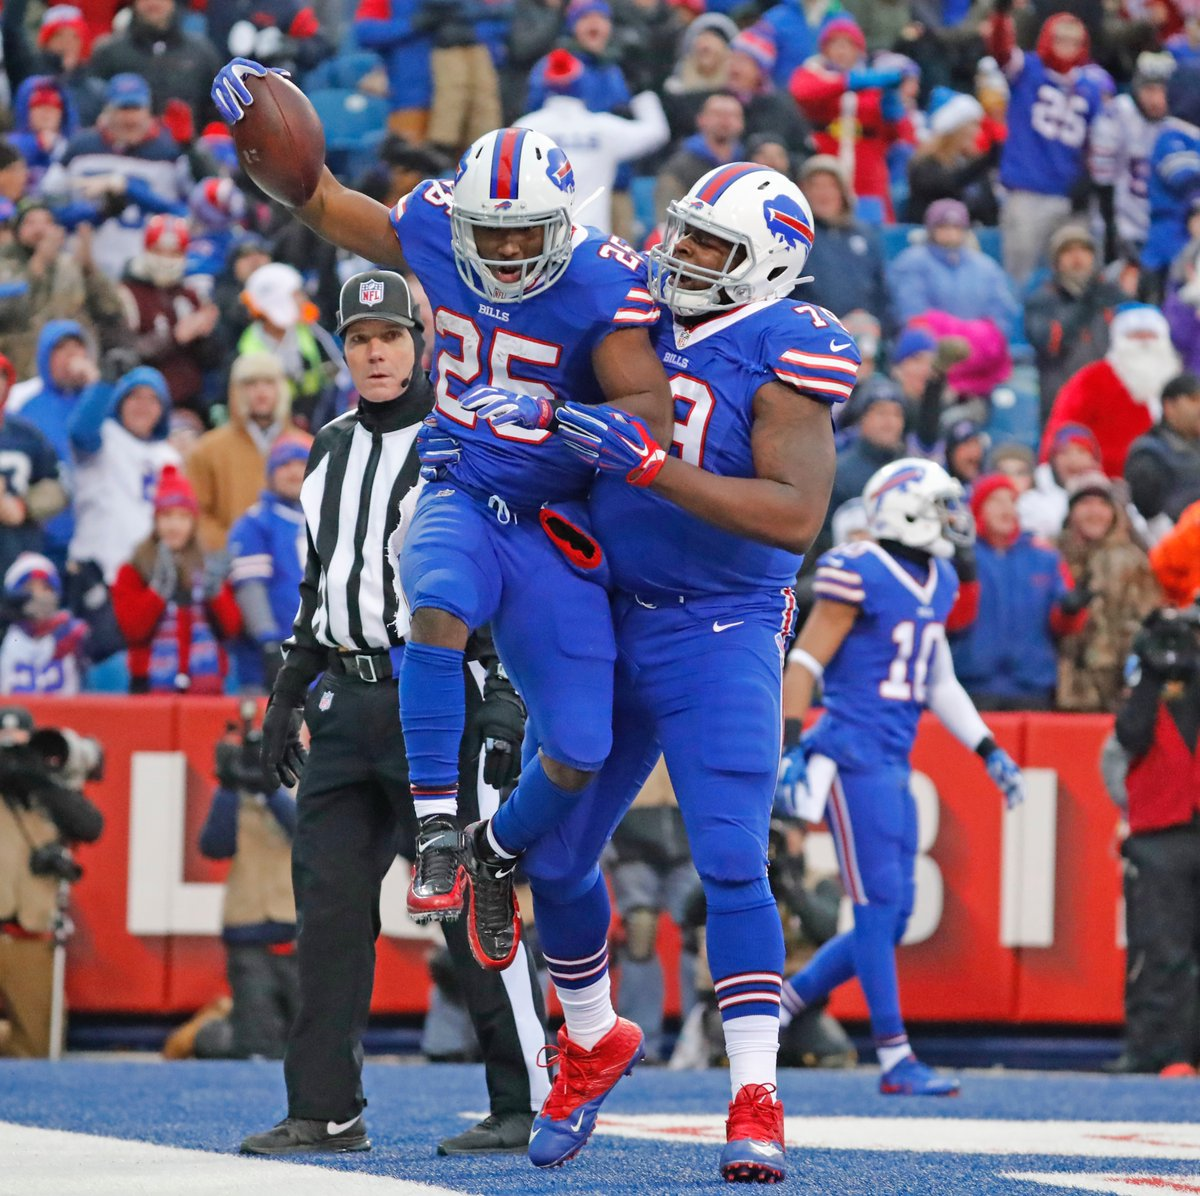 Bills running back LeSean McCoy has found joy entering his third season in Buffalo. (Harry Scull Jr./Buffalo News file photo)